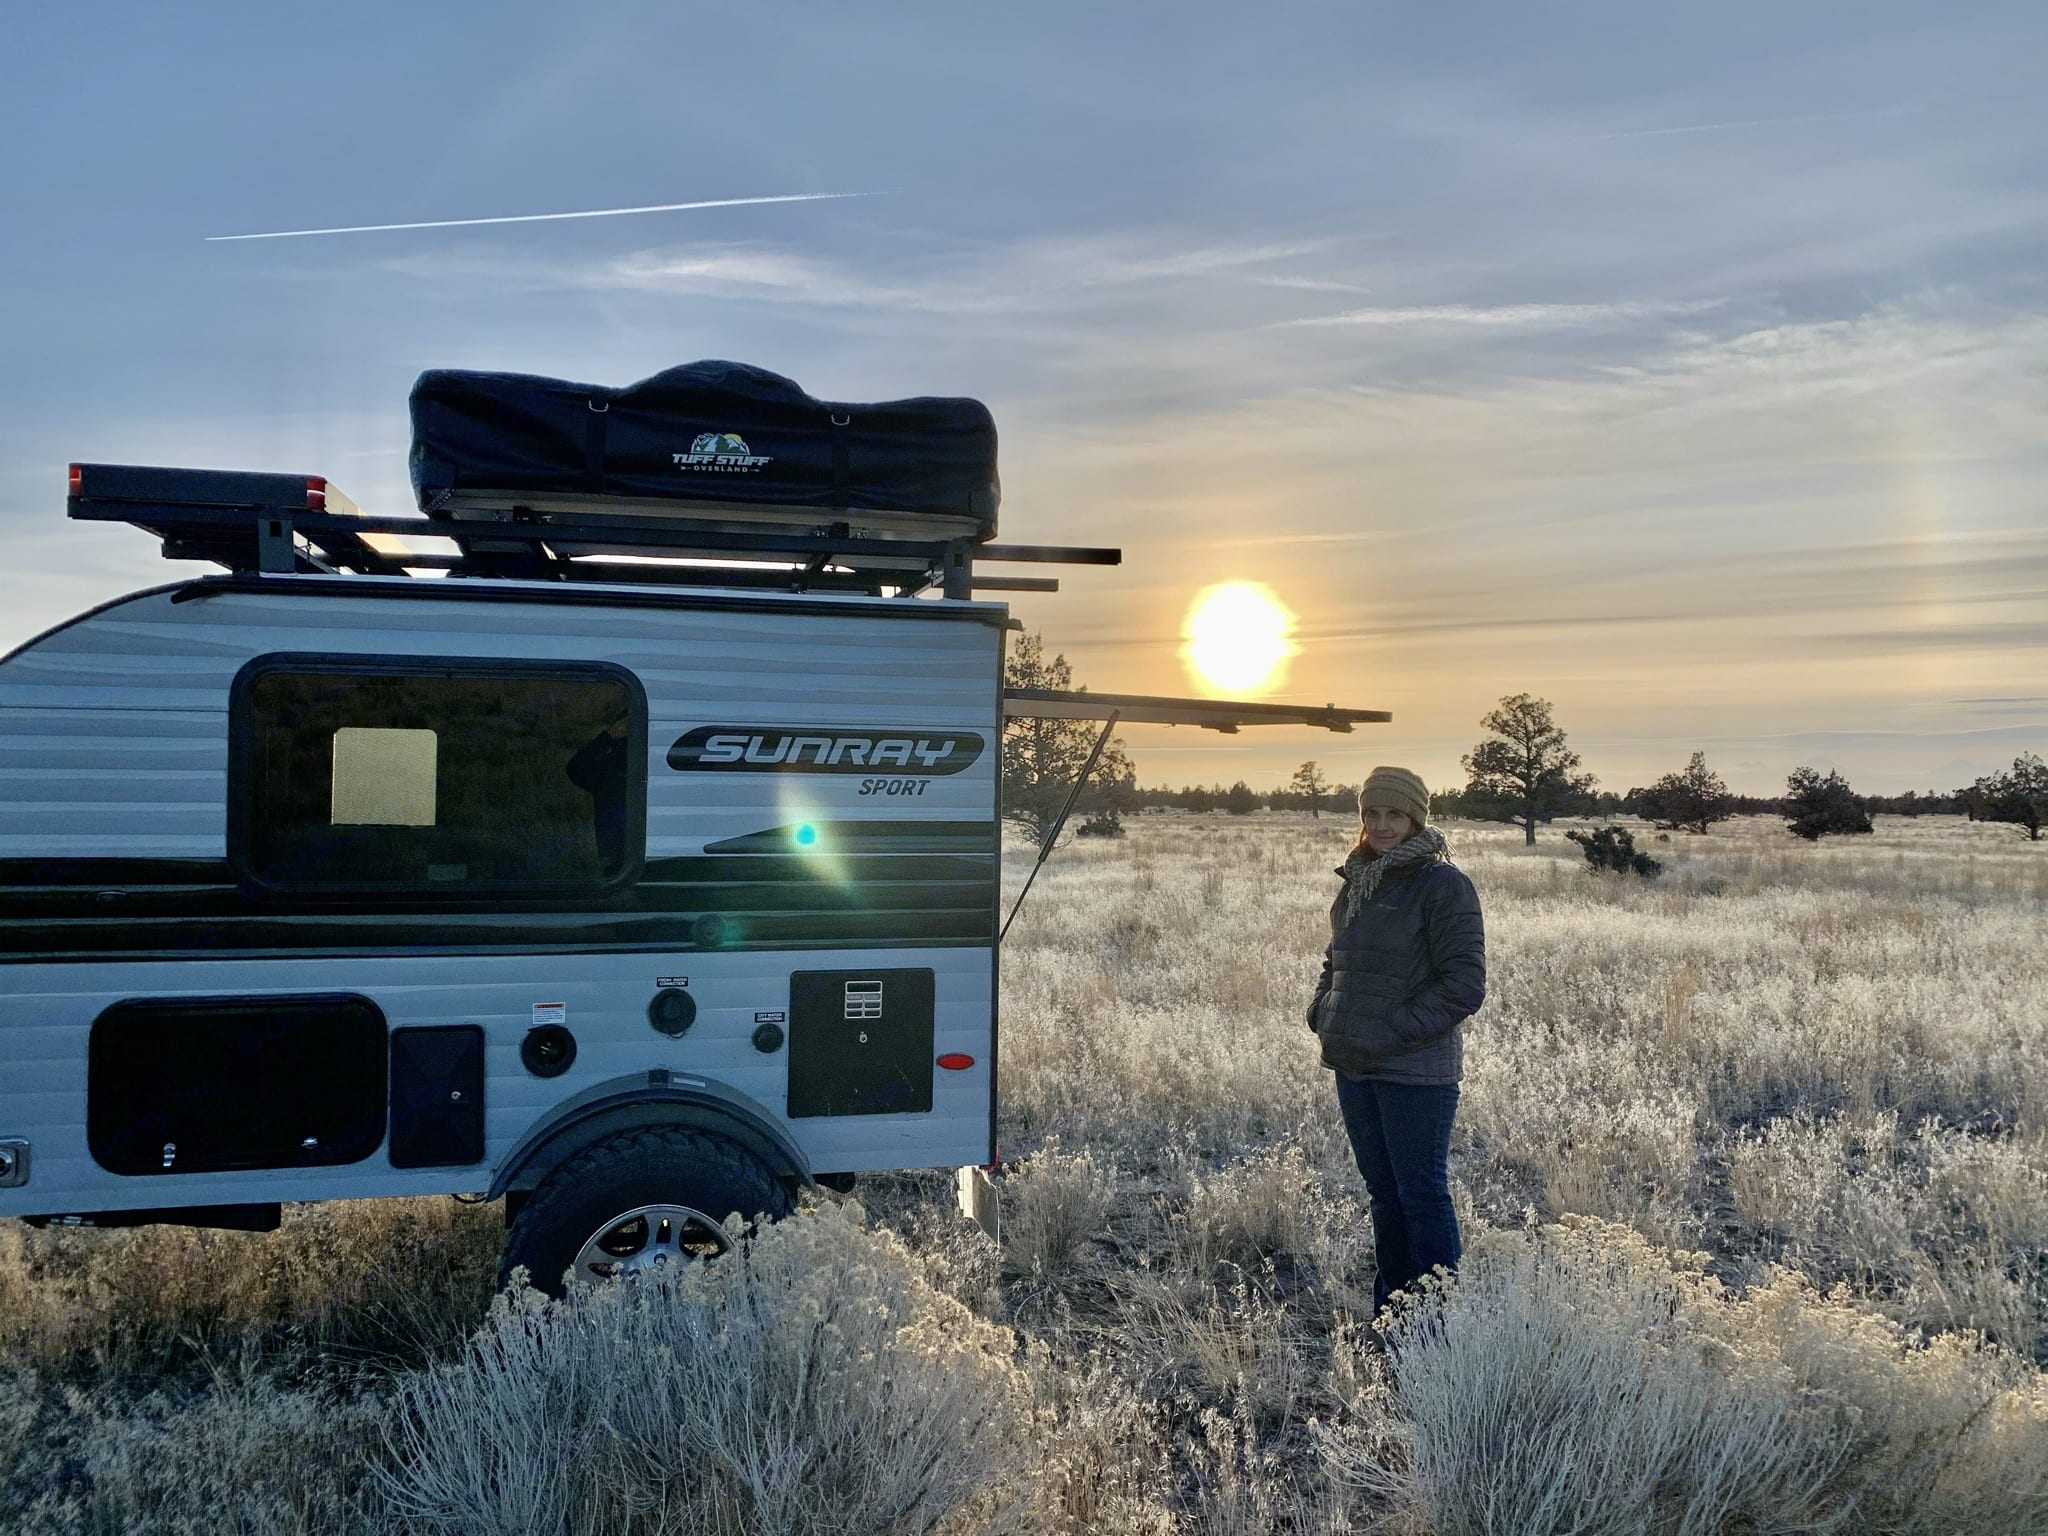 Explore your adventure in this 1280 lbs off grid solar equipped RV.  Sleeps 6 adults with RTT annex.  Craft your adventure. . Sunset Park & Rv Inc. Sunray 109 Sport 2021